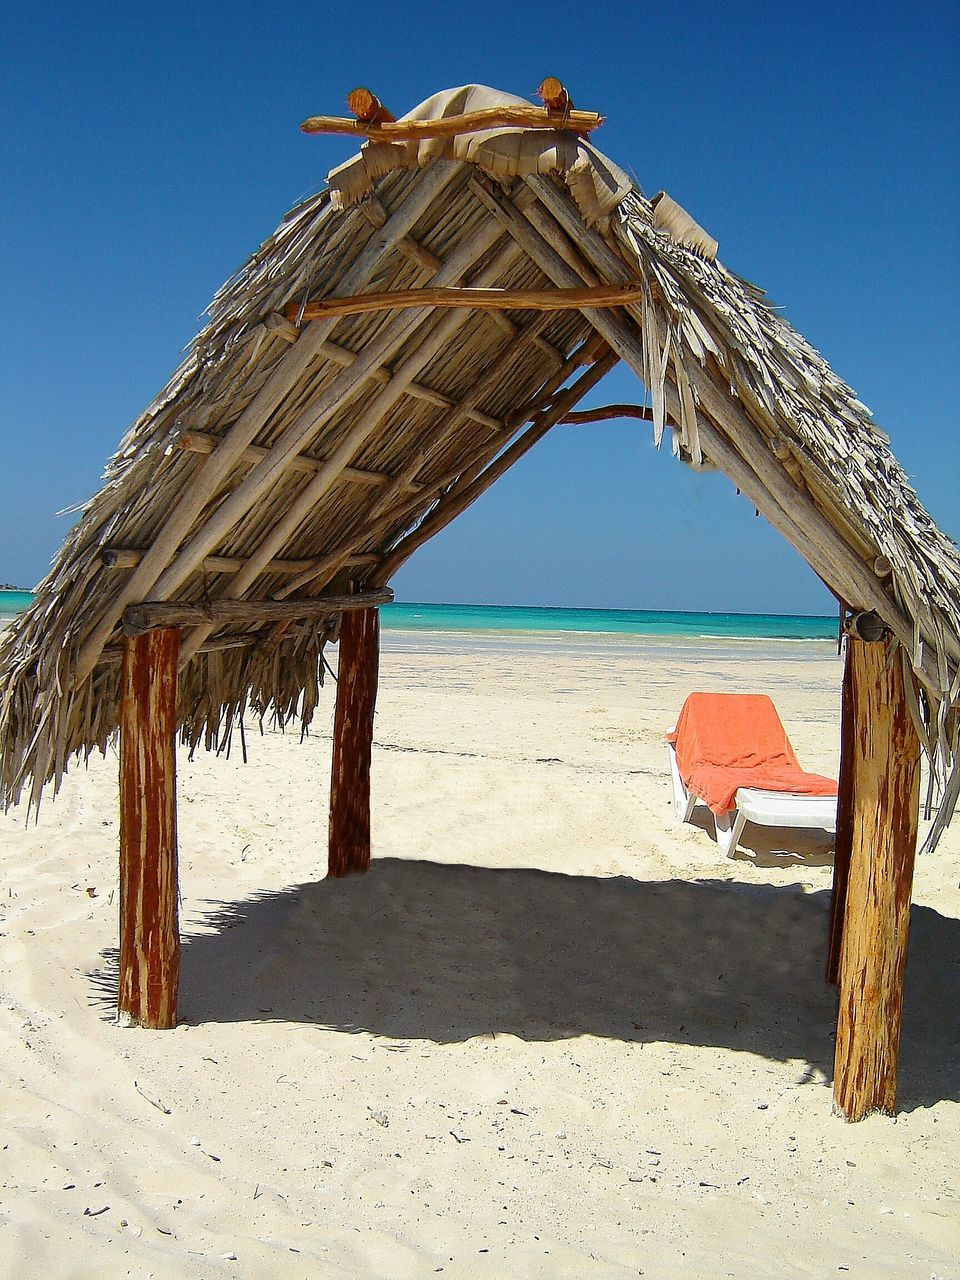 sand, beach, nature, sunlight, shore, sea, wood - material, shadow, clear sky, day, thatched roof, outdoors, beauty in nature, shelter, tranquility, no people, scenics, horizon over water, sky, water